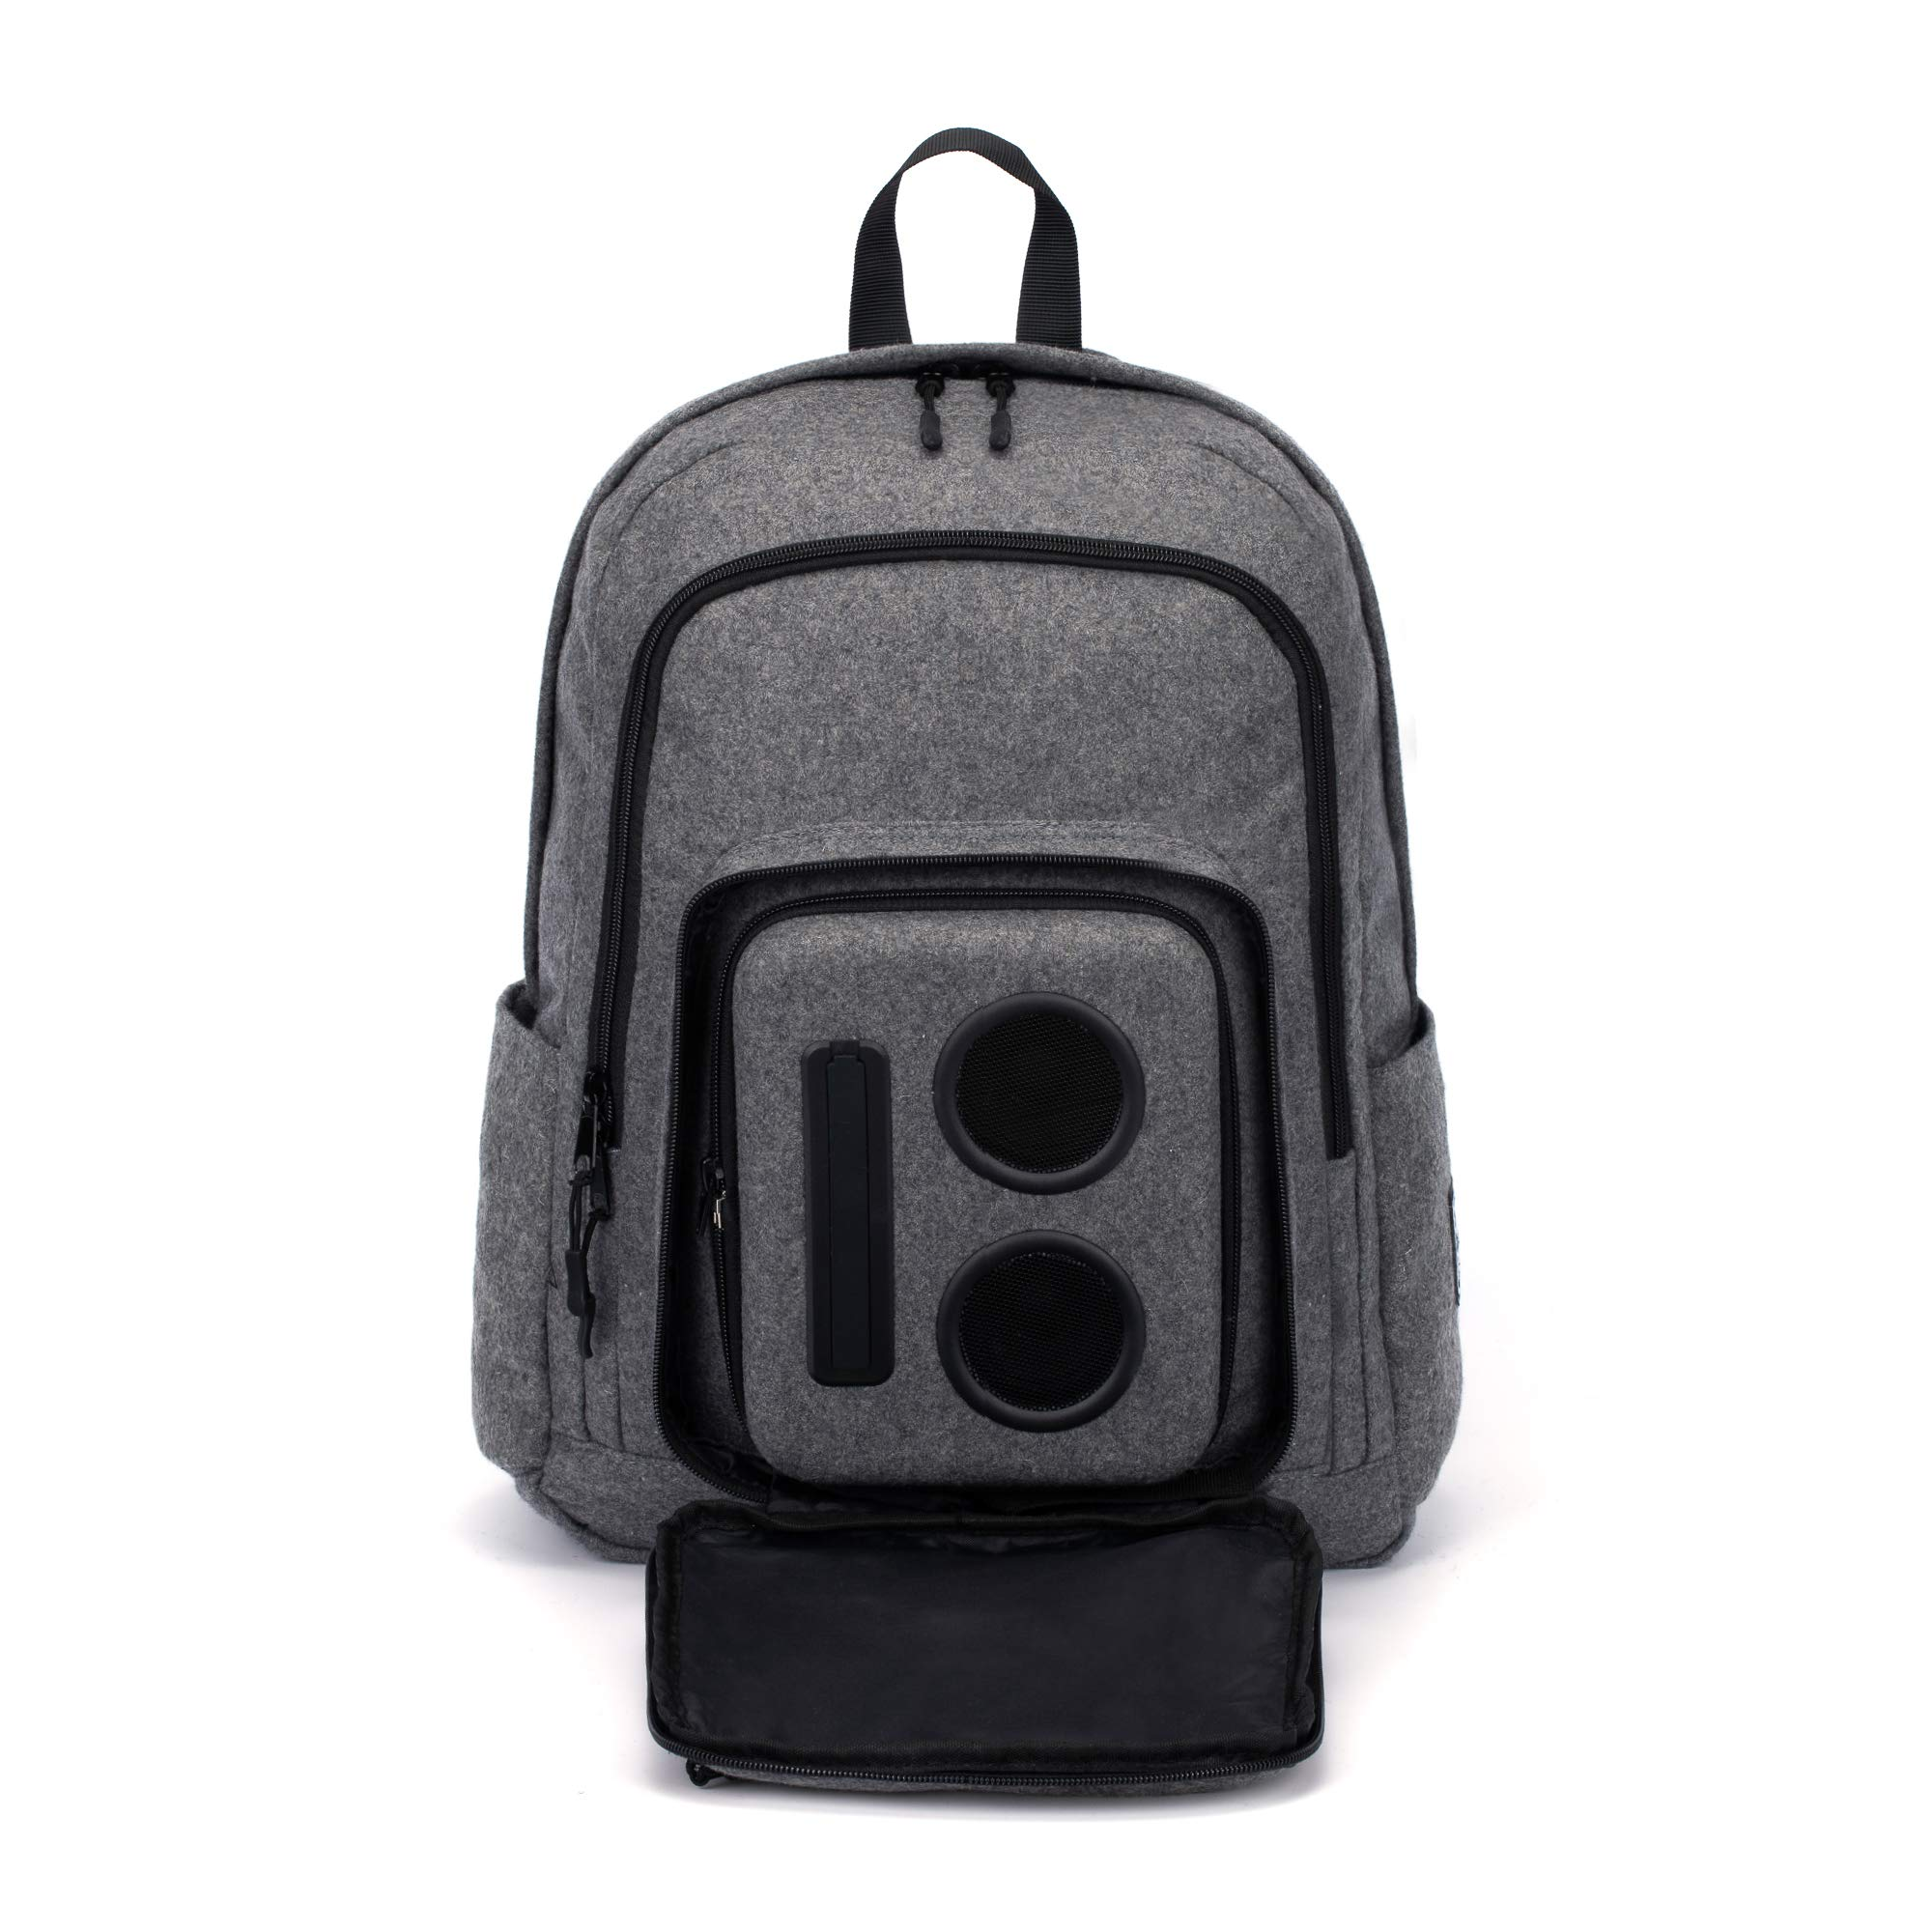 Bluetooth Speaker Backpack with 15-Watt Speakers & Subwoofer for Parties/Festivals/Beach/School. Rechargeable, Works with iPhone & Android (Gray, 2019 Edition) by Super Real Business